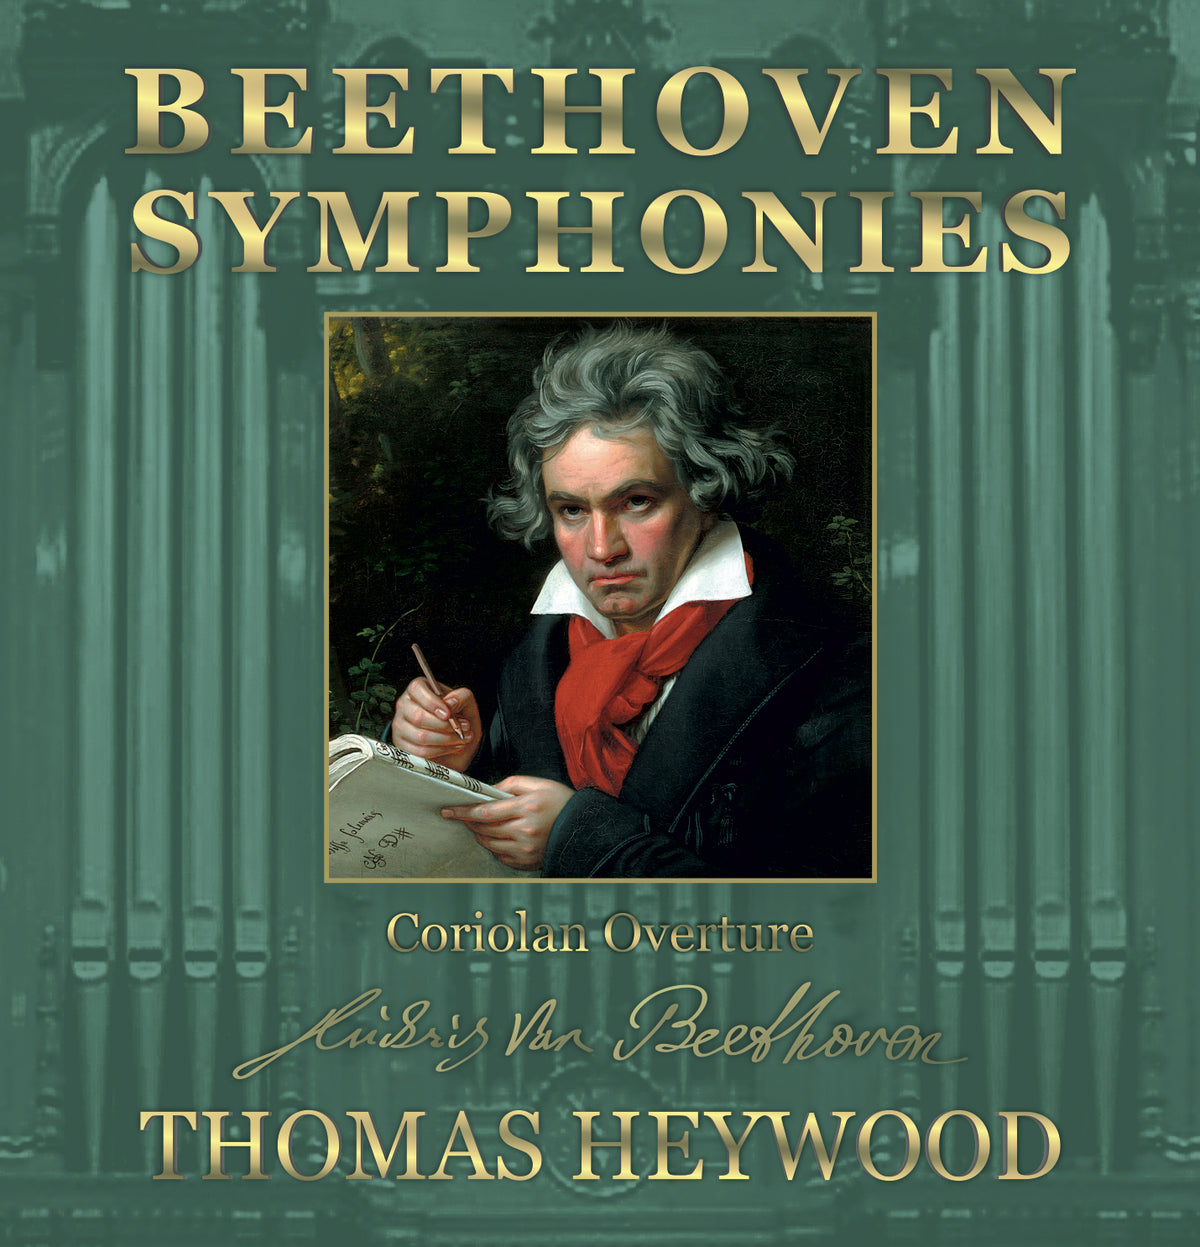 Beethoven/Heywood - Coriolan Overture, Op. 62 | Thomas Heywood | Concert Organ International